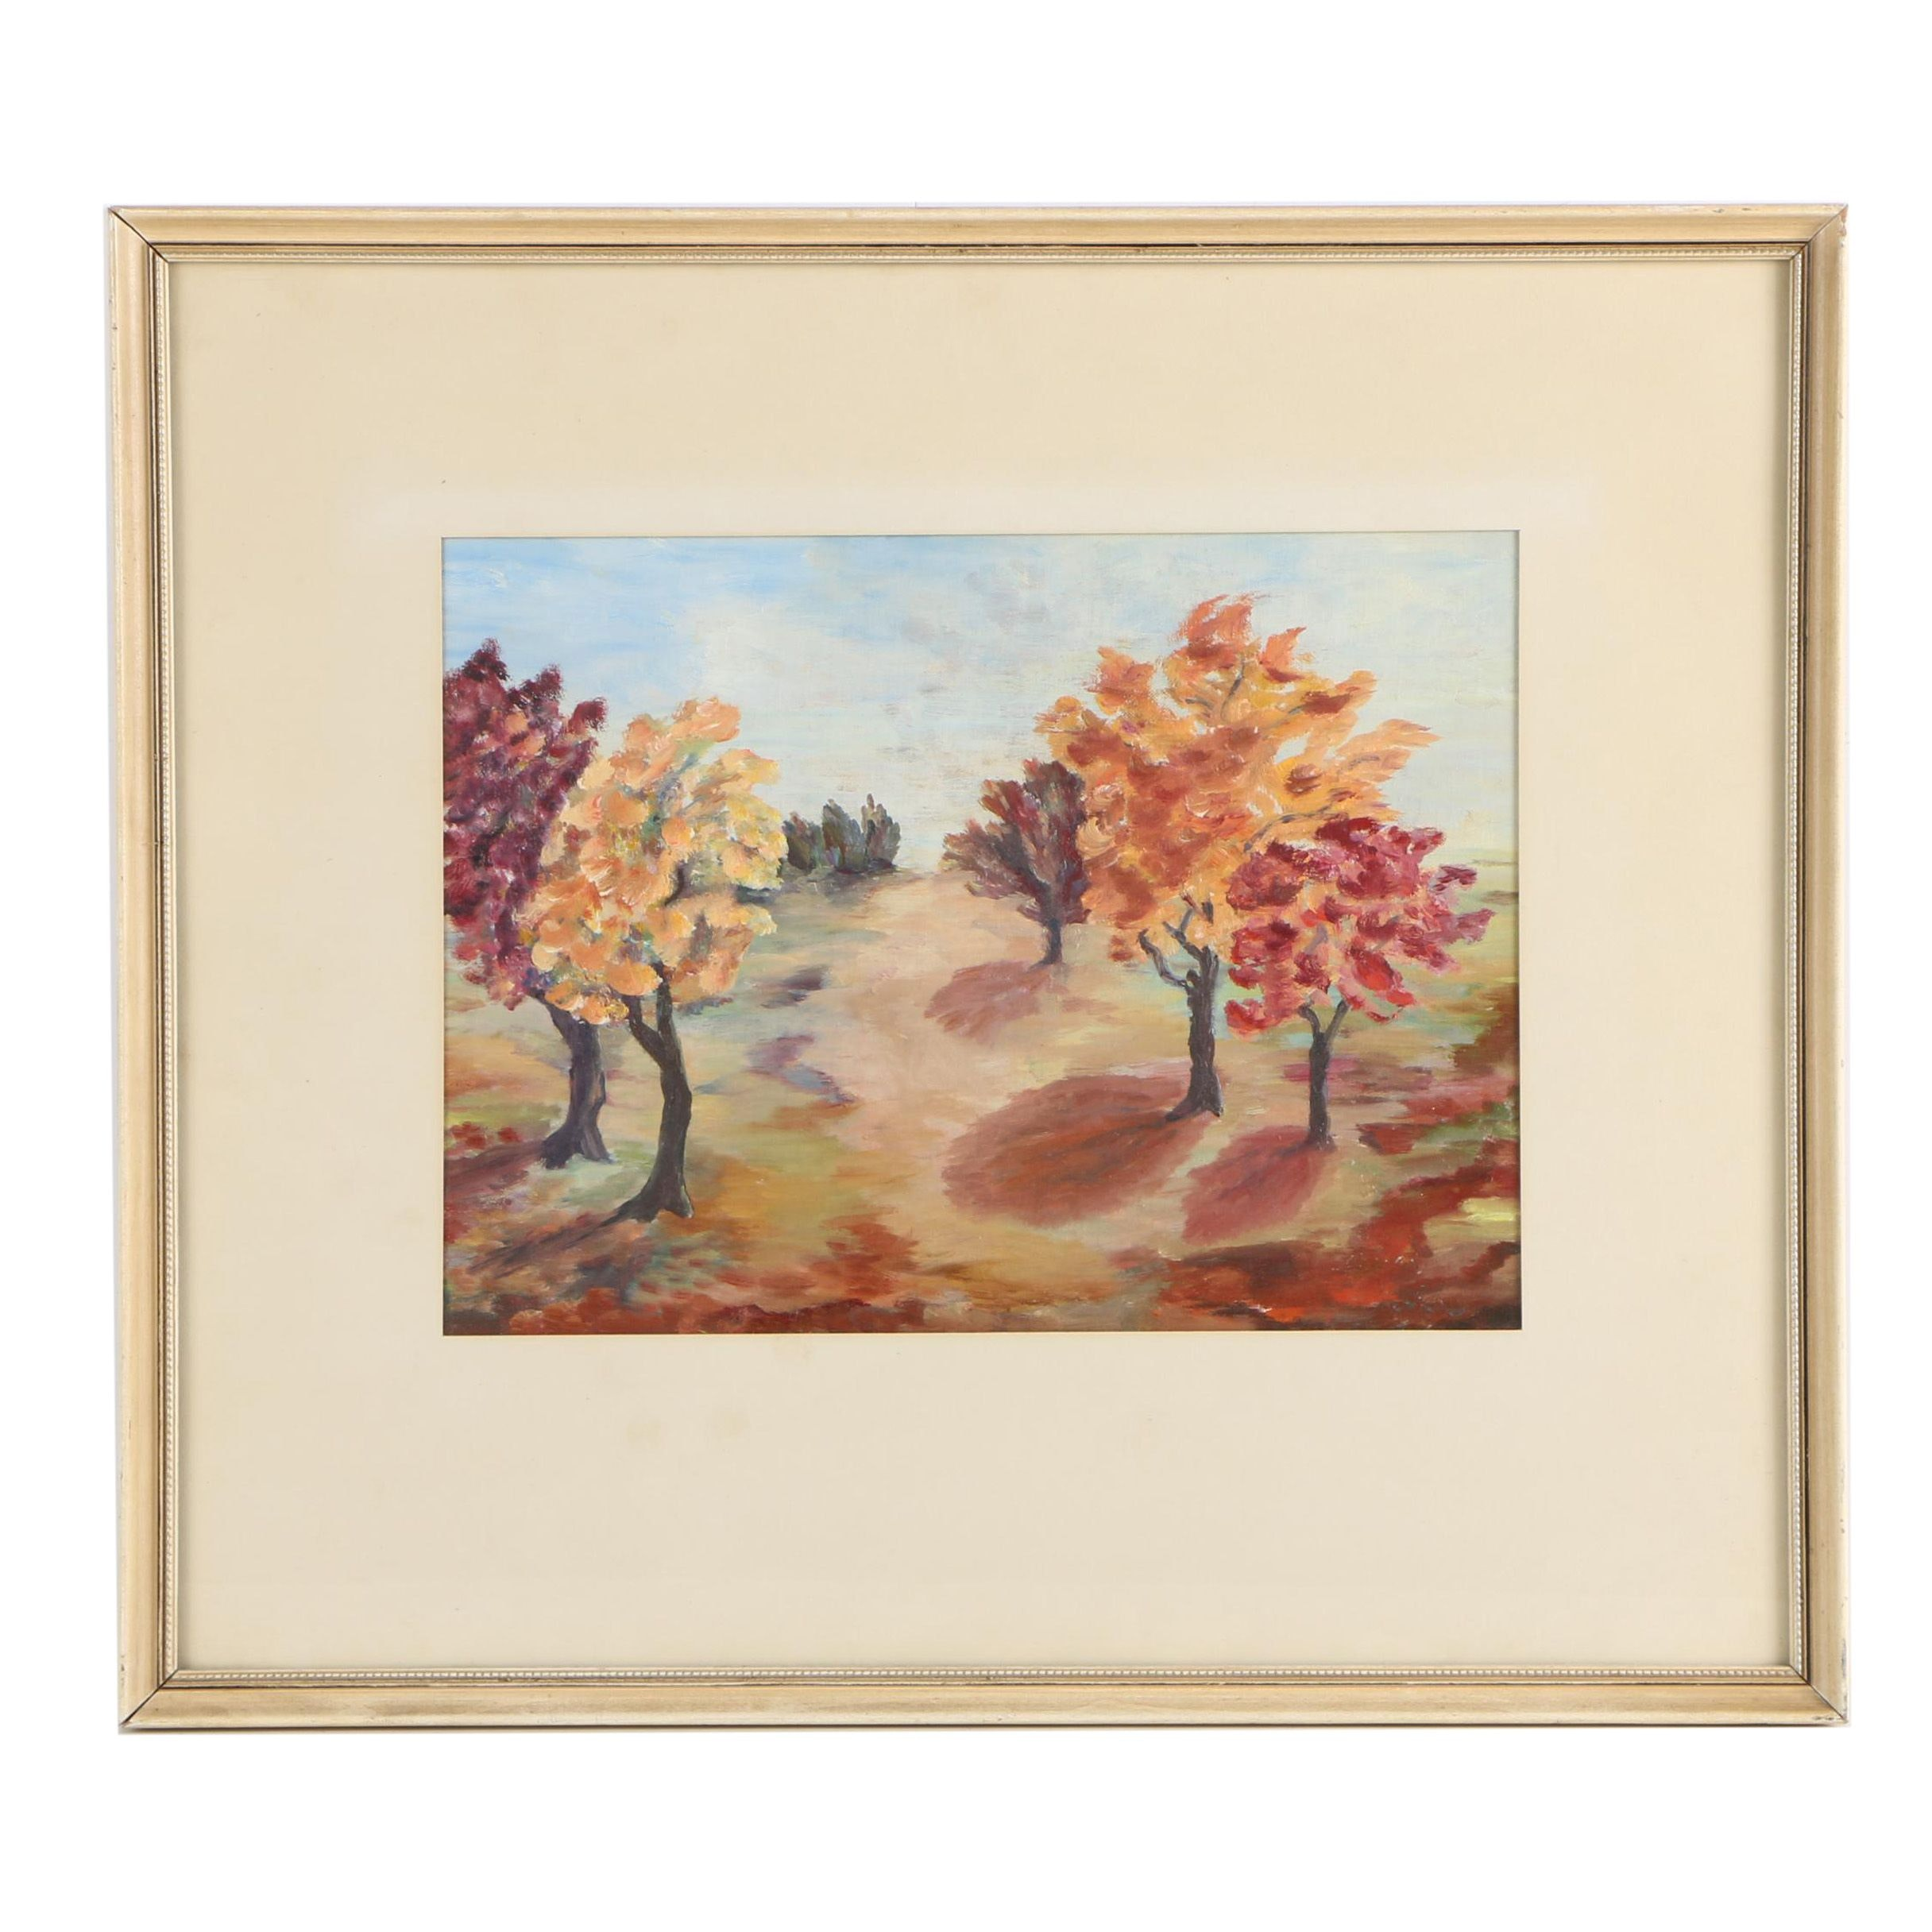 Mid Century Impressionist-Inspired Oil Painting of Autumn Trees